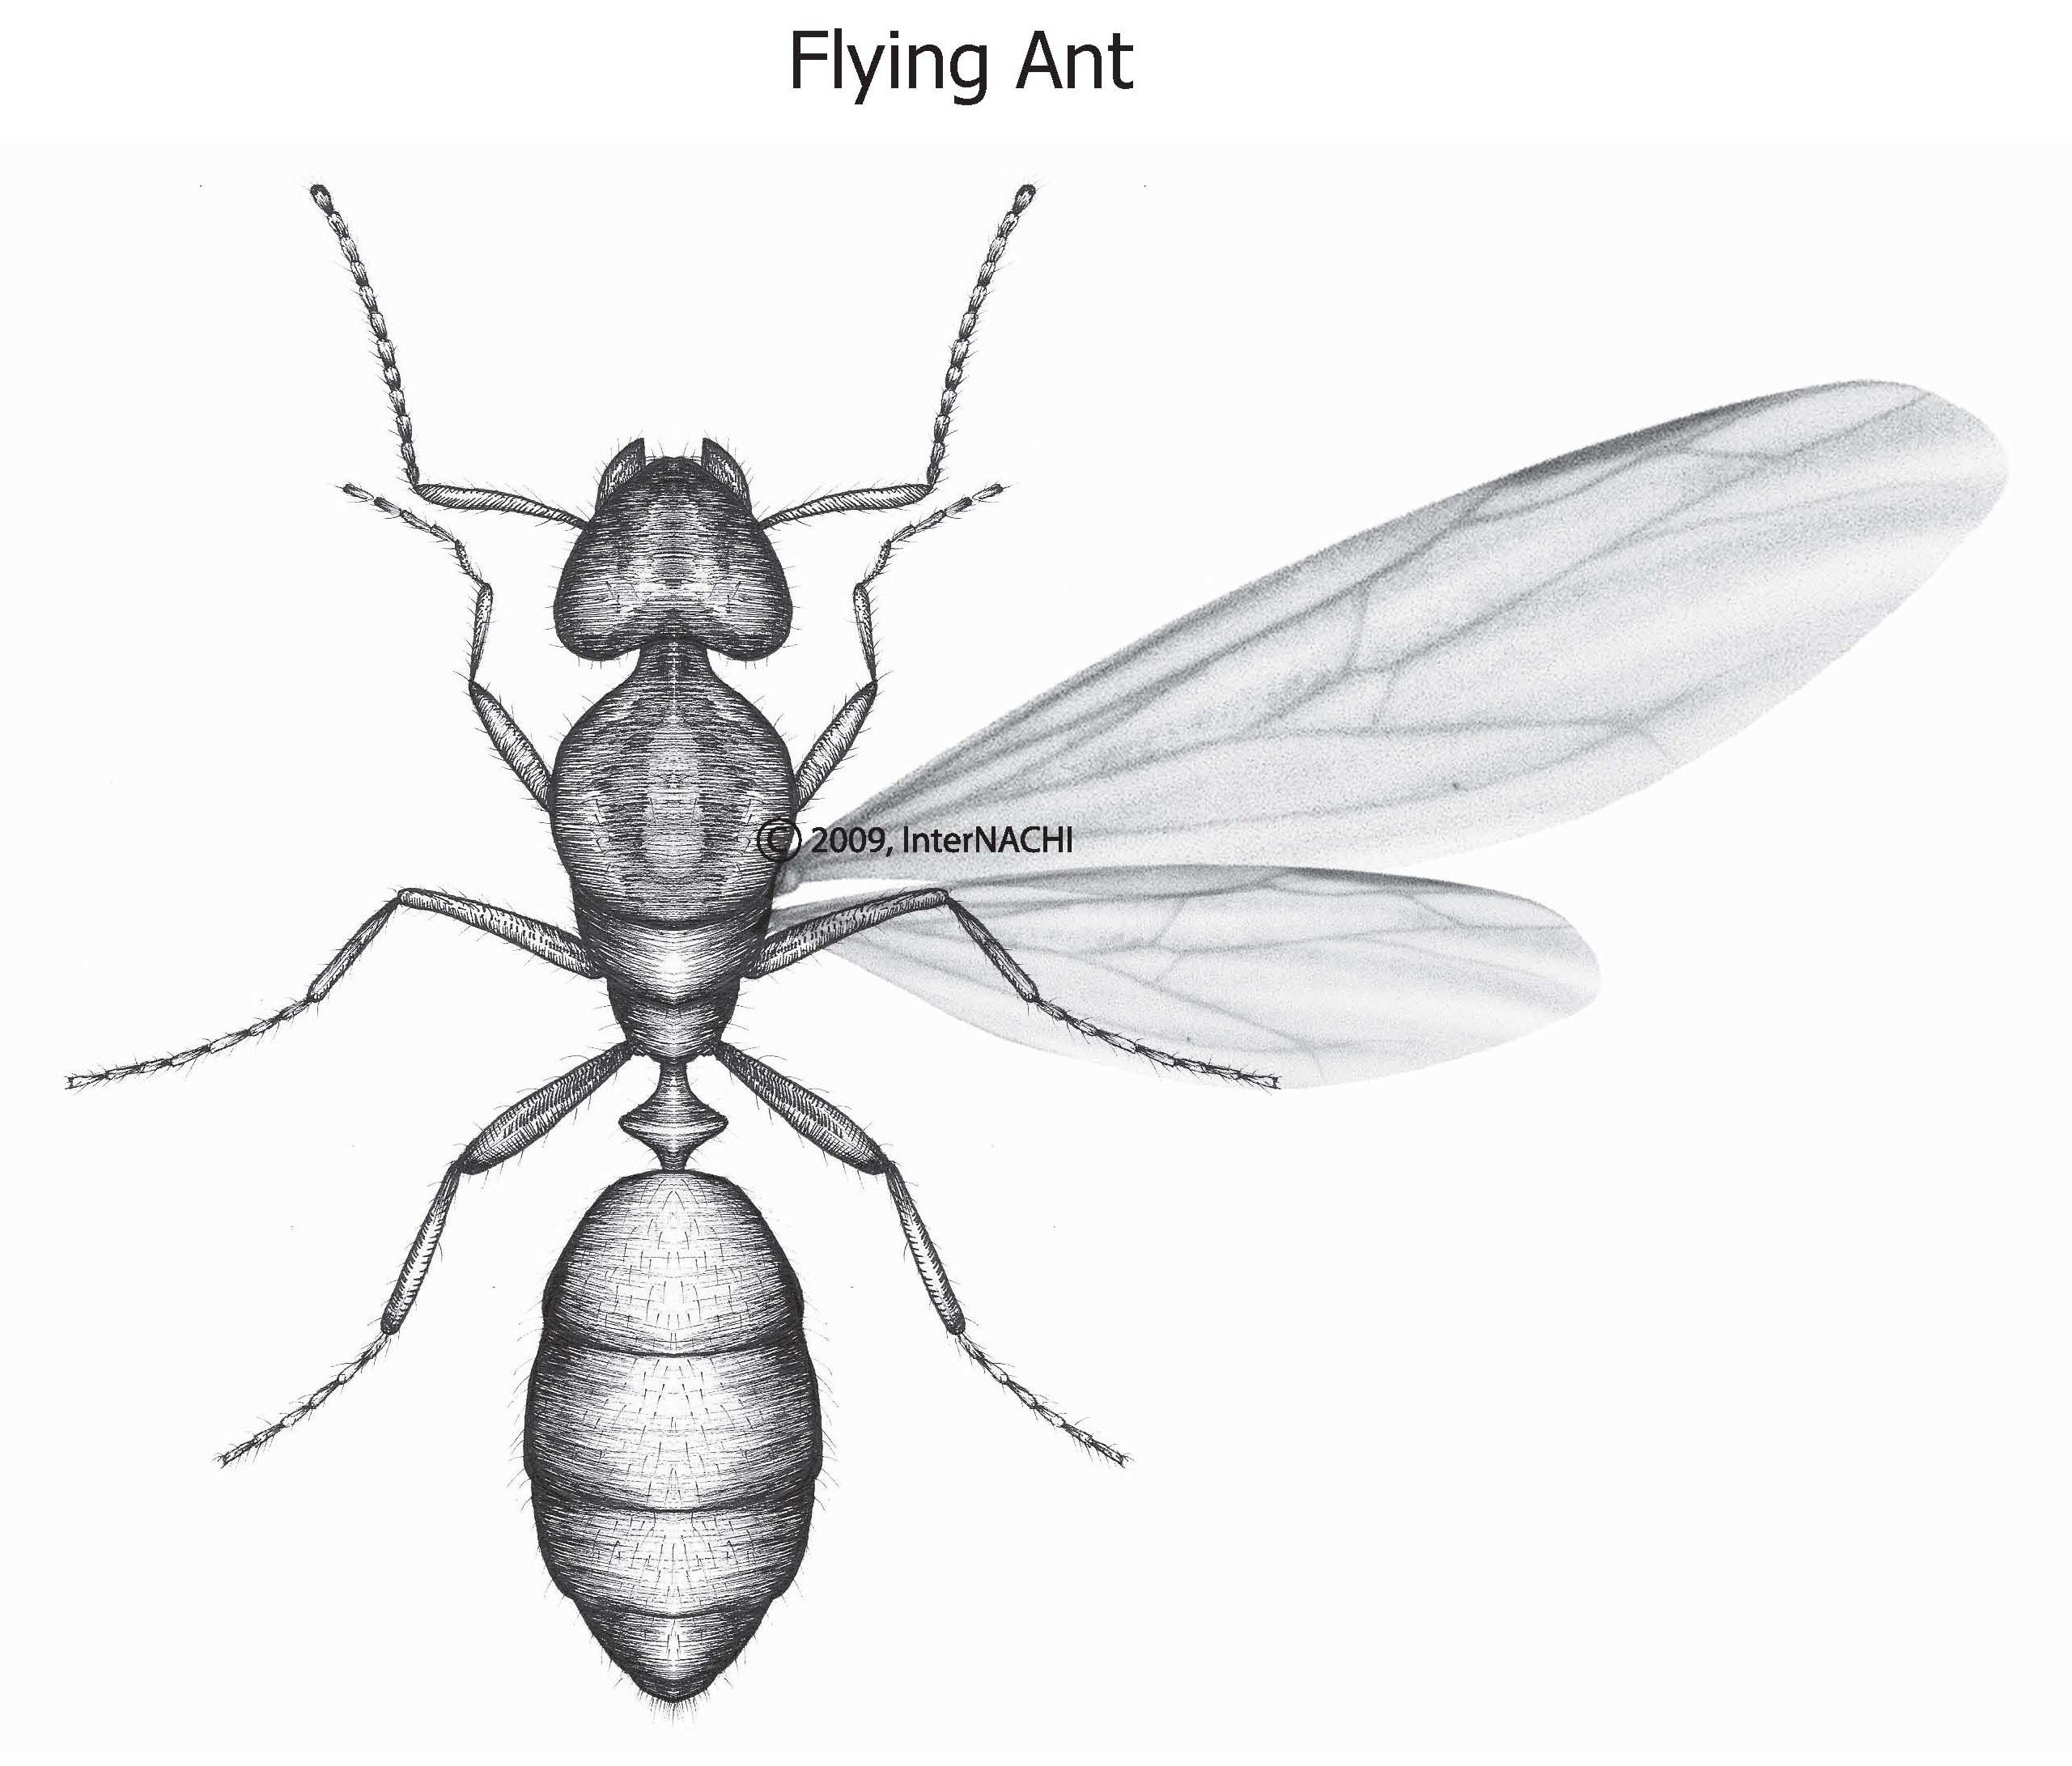 Termite: Is A Flying Ant A Termite